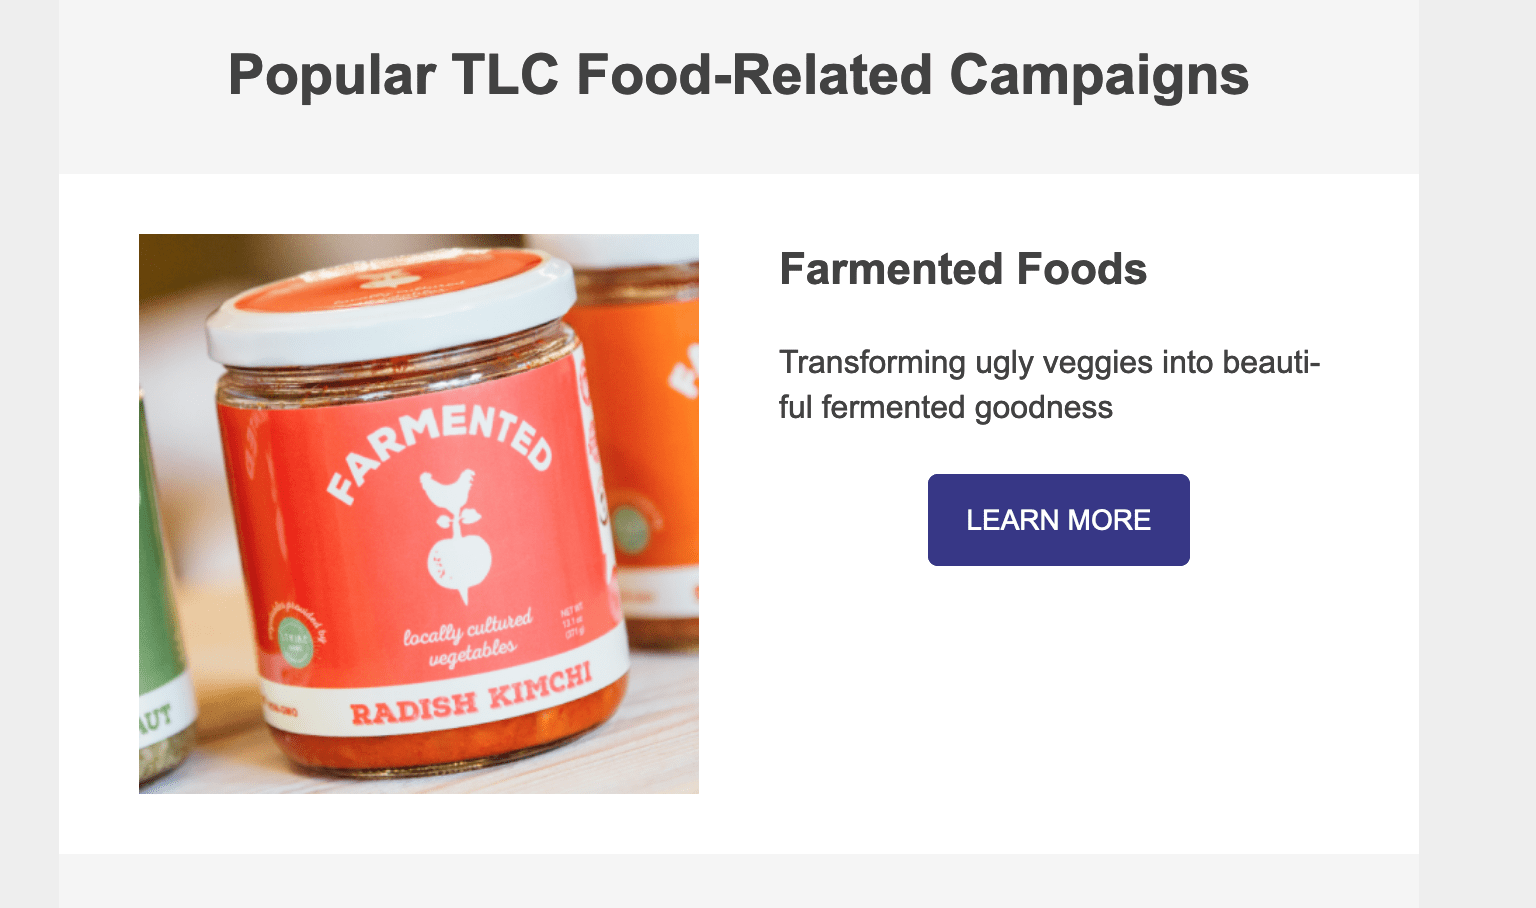 Celebrate Local Food with Crowdfunding, Farmented Foods